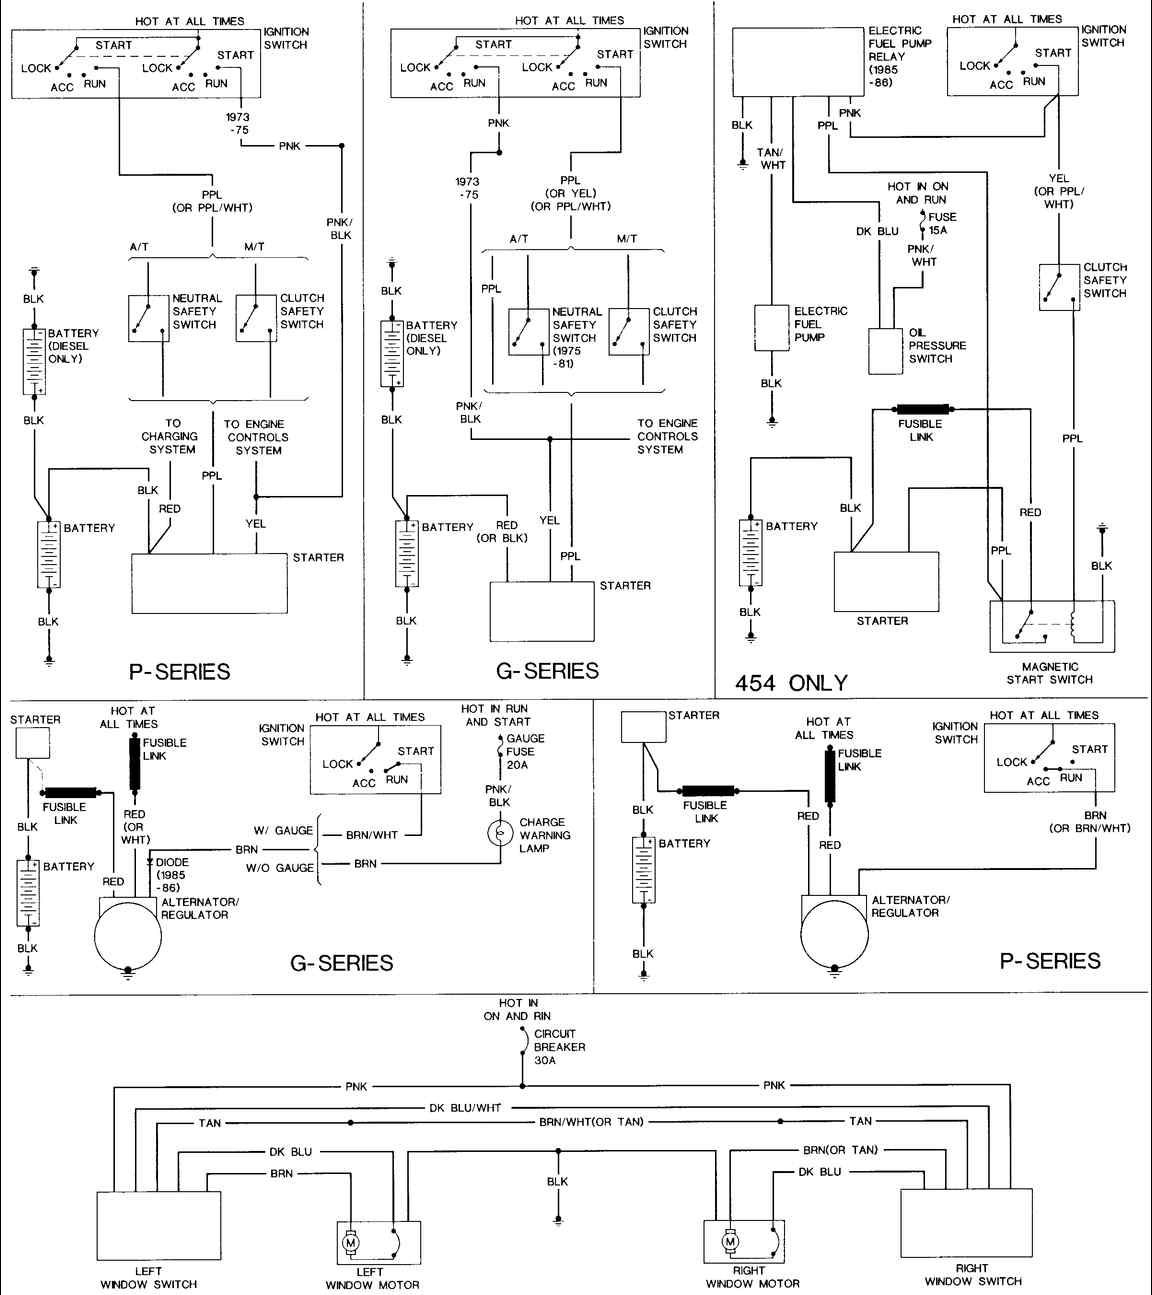 0c73623a181dc376dbb4777e2029d285 85 chevy truck wiring diagram 85 chevy van the steering column  at mifinder.co